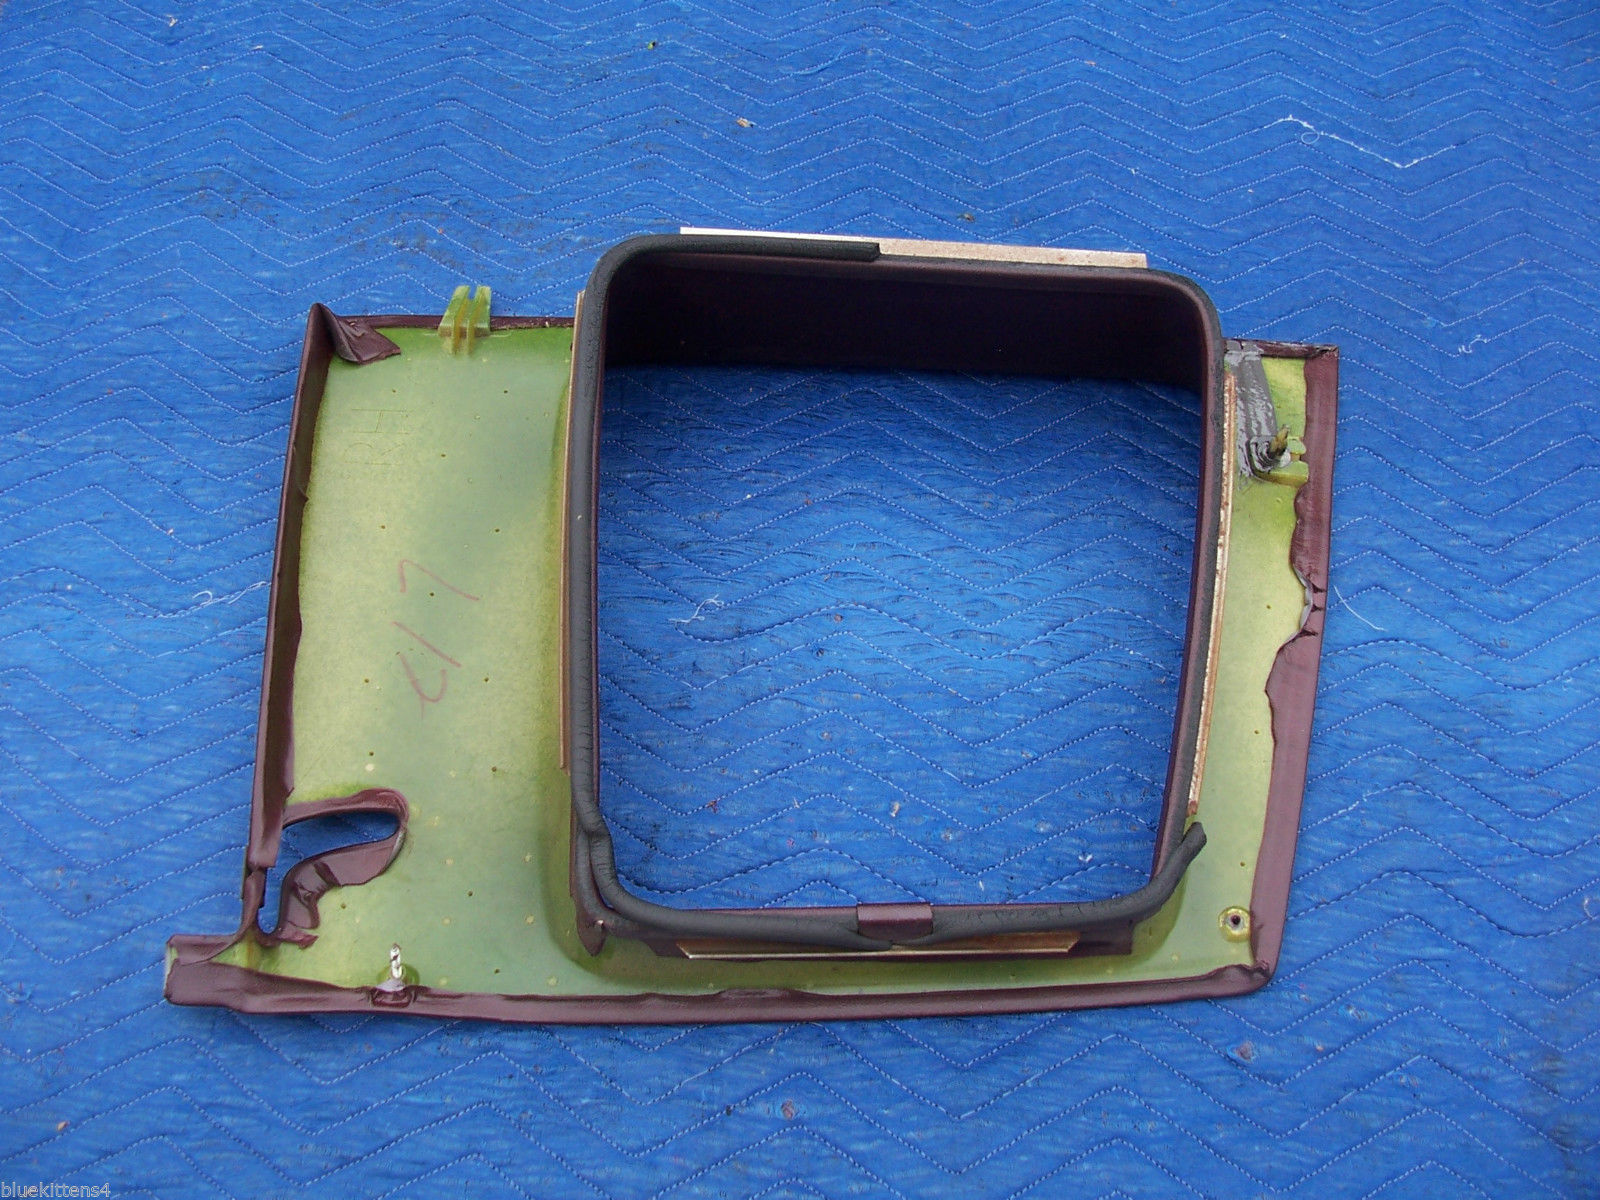 1977 COUPE DEVILLE RIGHT OPERA WINDOW TRIM PANEL OEM USED CADILLAC PART image 9